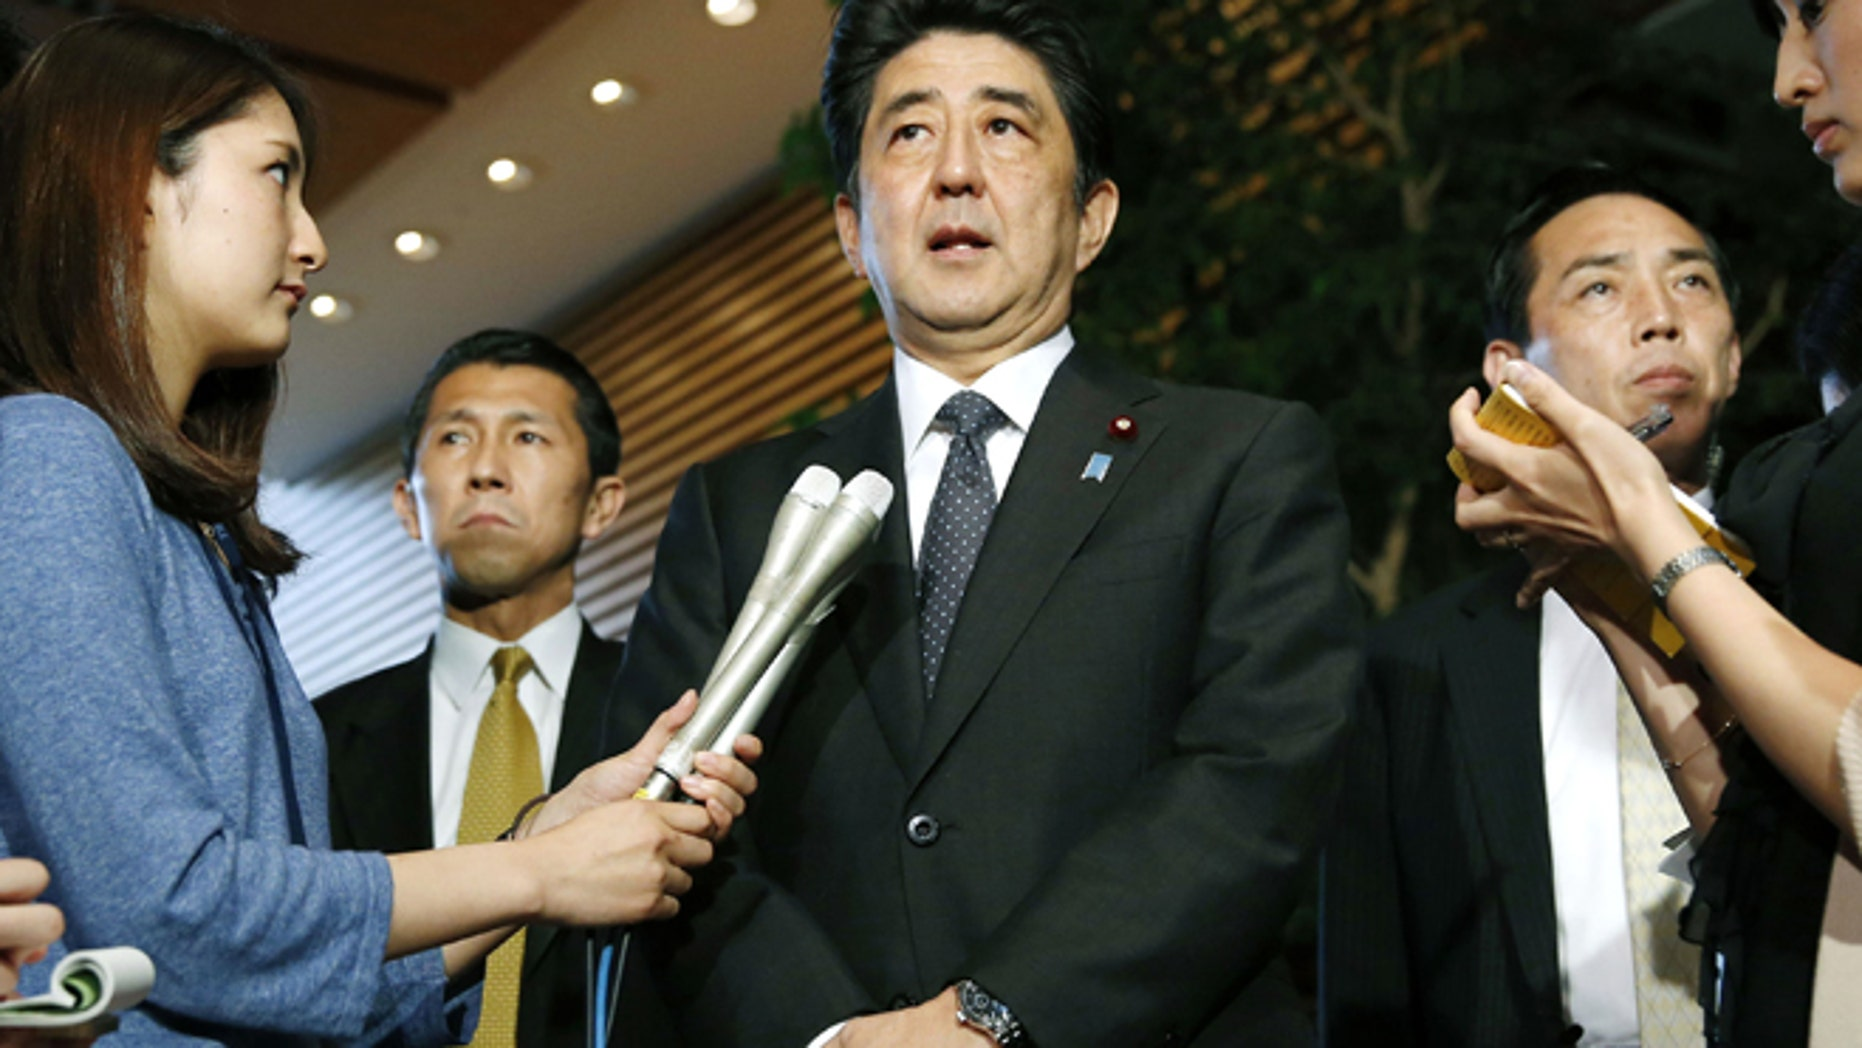 May 29. 2014: Japanese Prime Minister Shinzo Abe, center, speaks to the media about a three-day talks in Stockholm with North Korea at the prime minister's official residence in Tokyo. (AP)